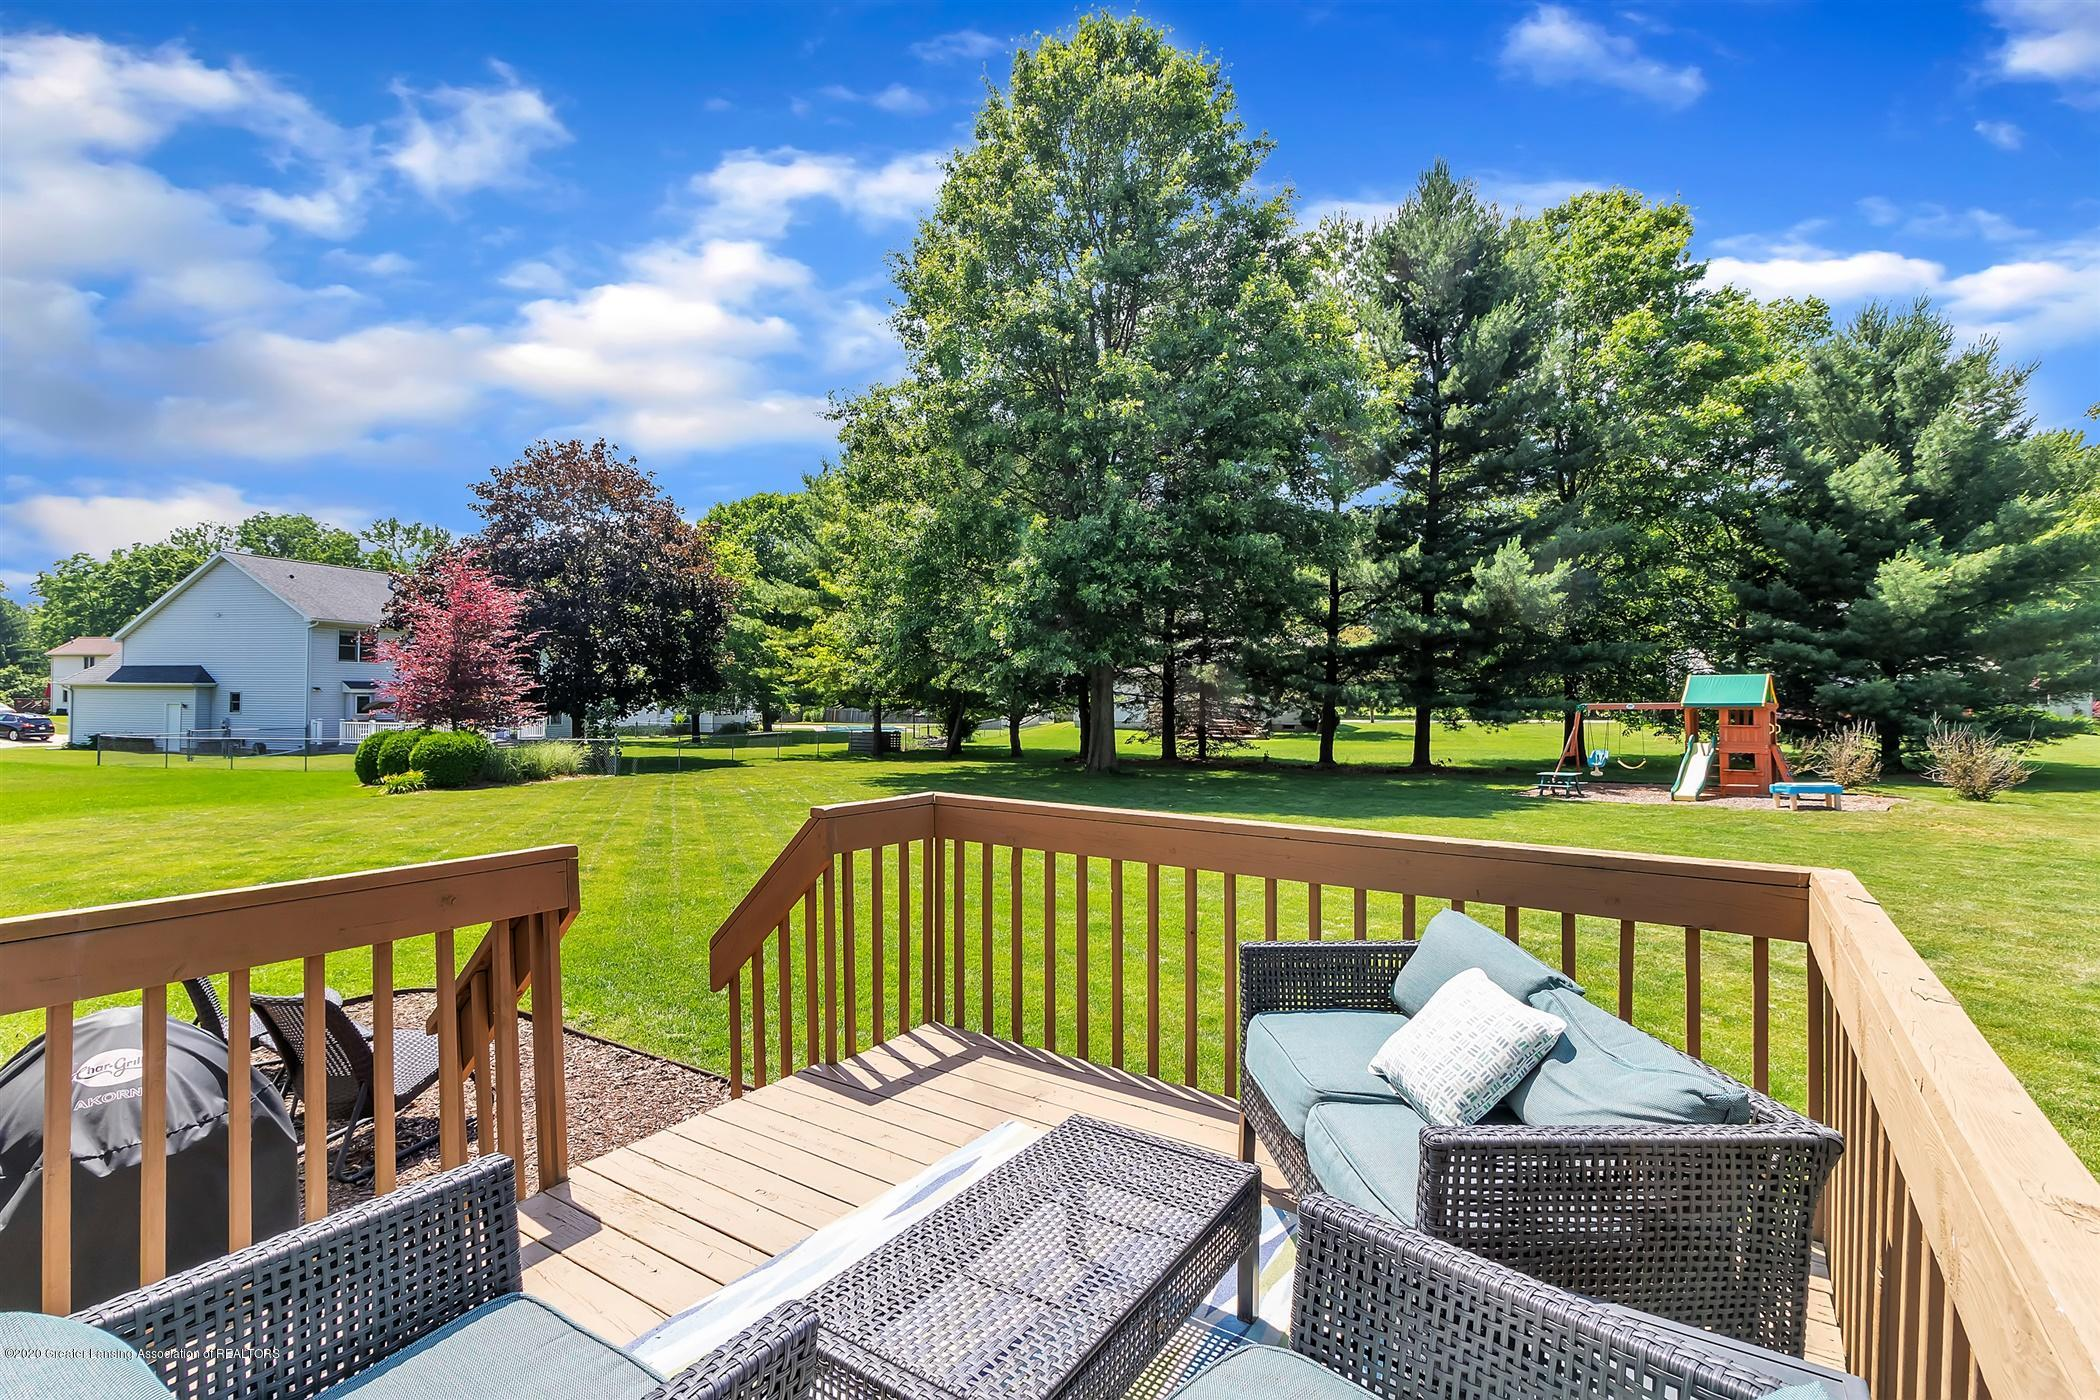 2945 Whistlewood Way - 38-2945Whistlewood-WindowStill-Real - 38